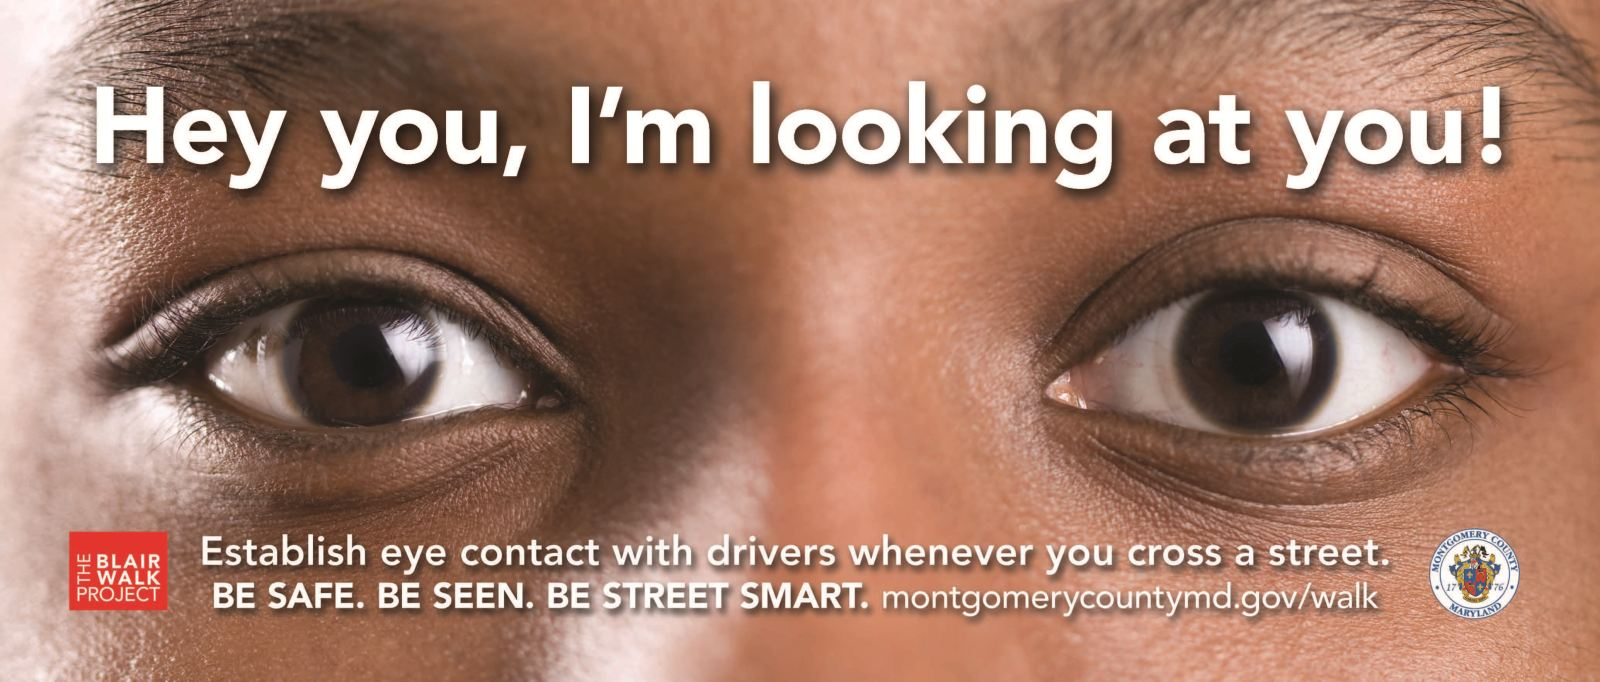 Montgomery County Best Eyes Campaign